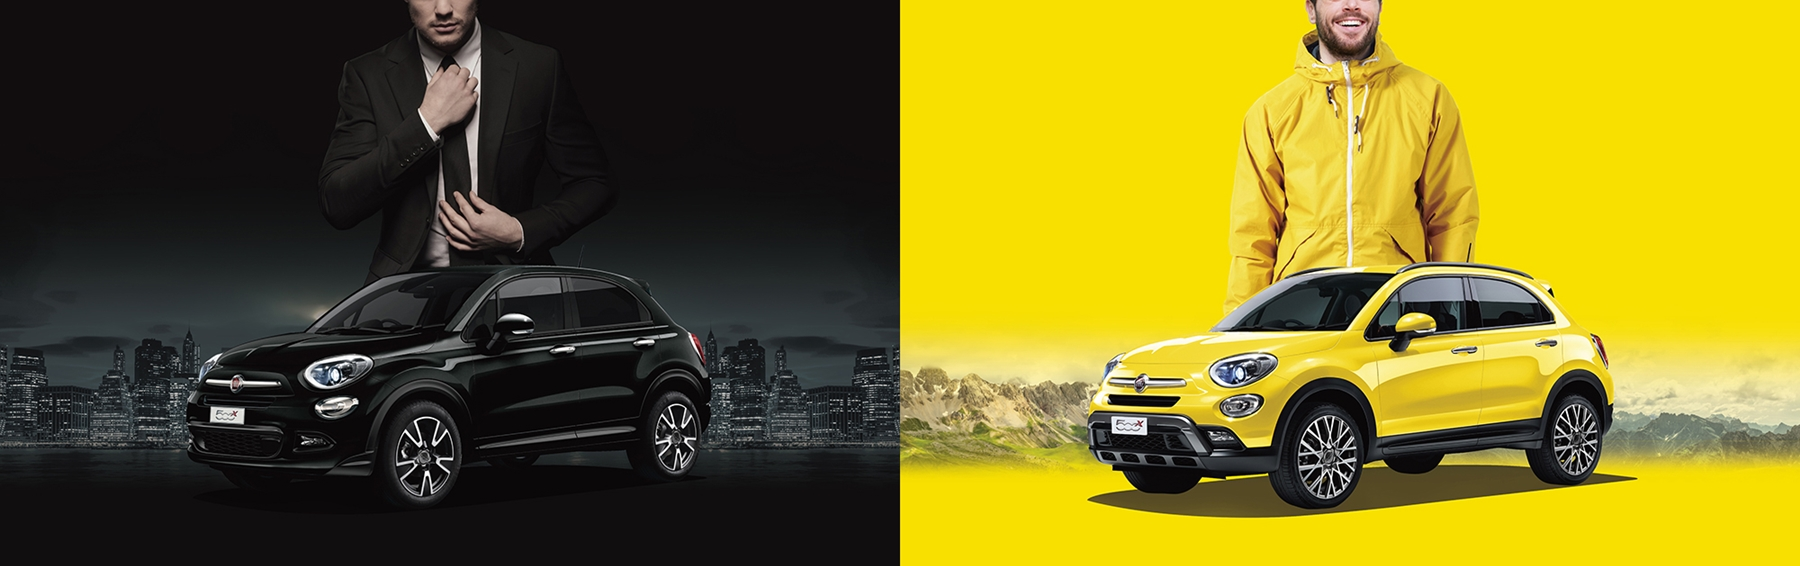 161020fiat500X_black_tie_yellow_cross